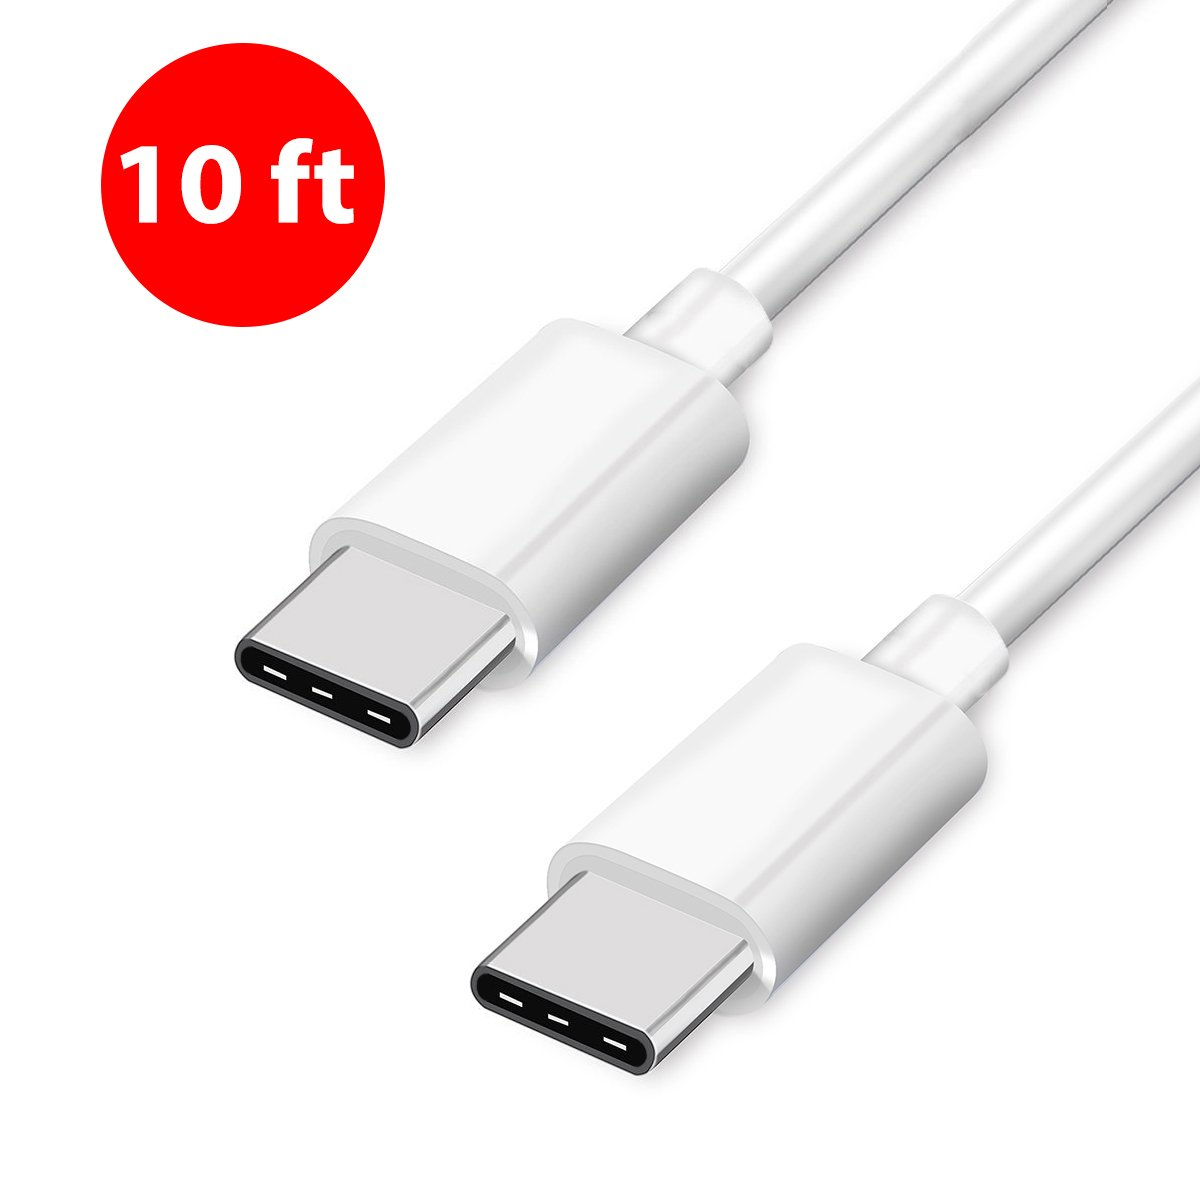 Type C USB-C to USB-C Charge Cable and Sync Cable 10 Feet (3 Meters) for MLL82AM/A Apple MacBook Pro Oneplus HP Blu Blackberry ChromeBook Samsung Nintendo Switch Nexus Phone (1 Pack, 10 Ft. (3m))